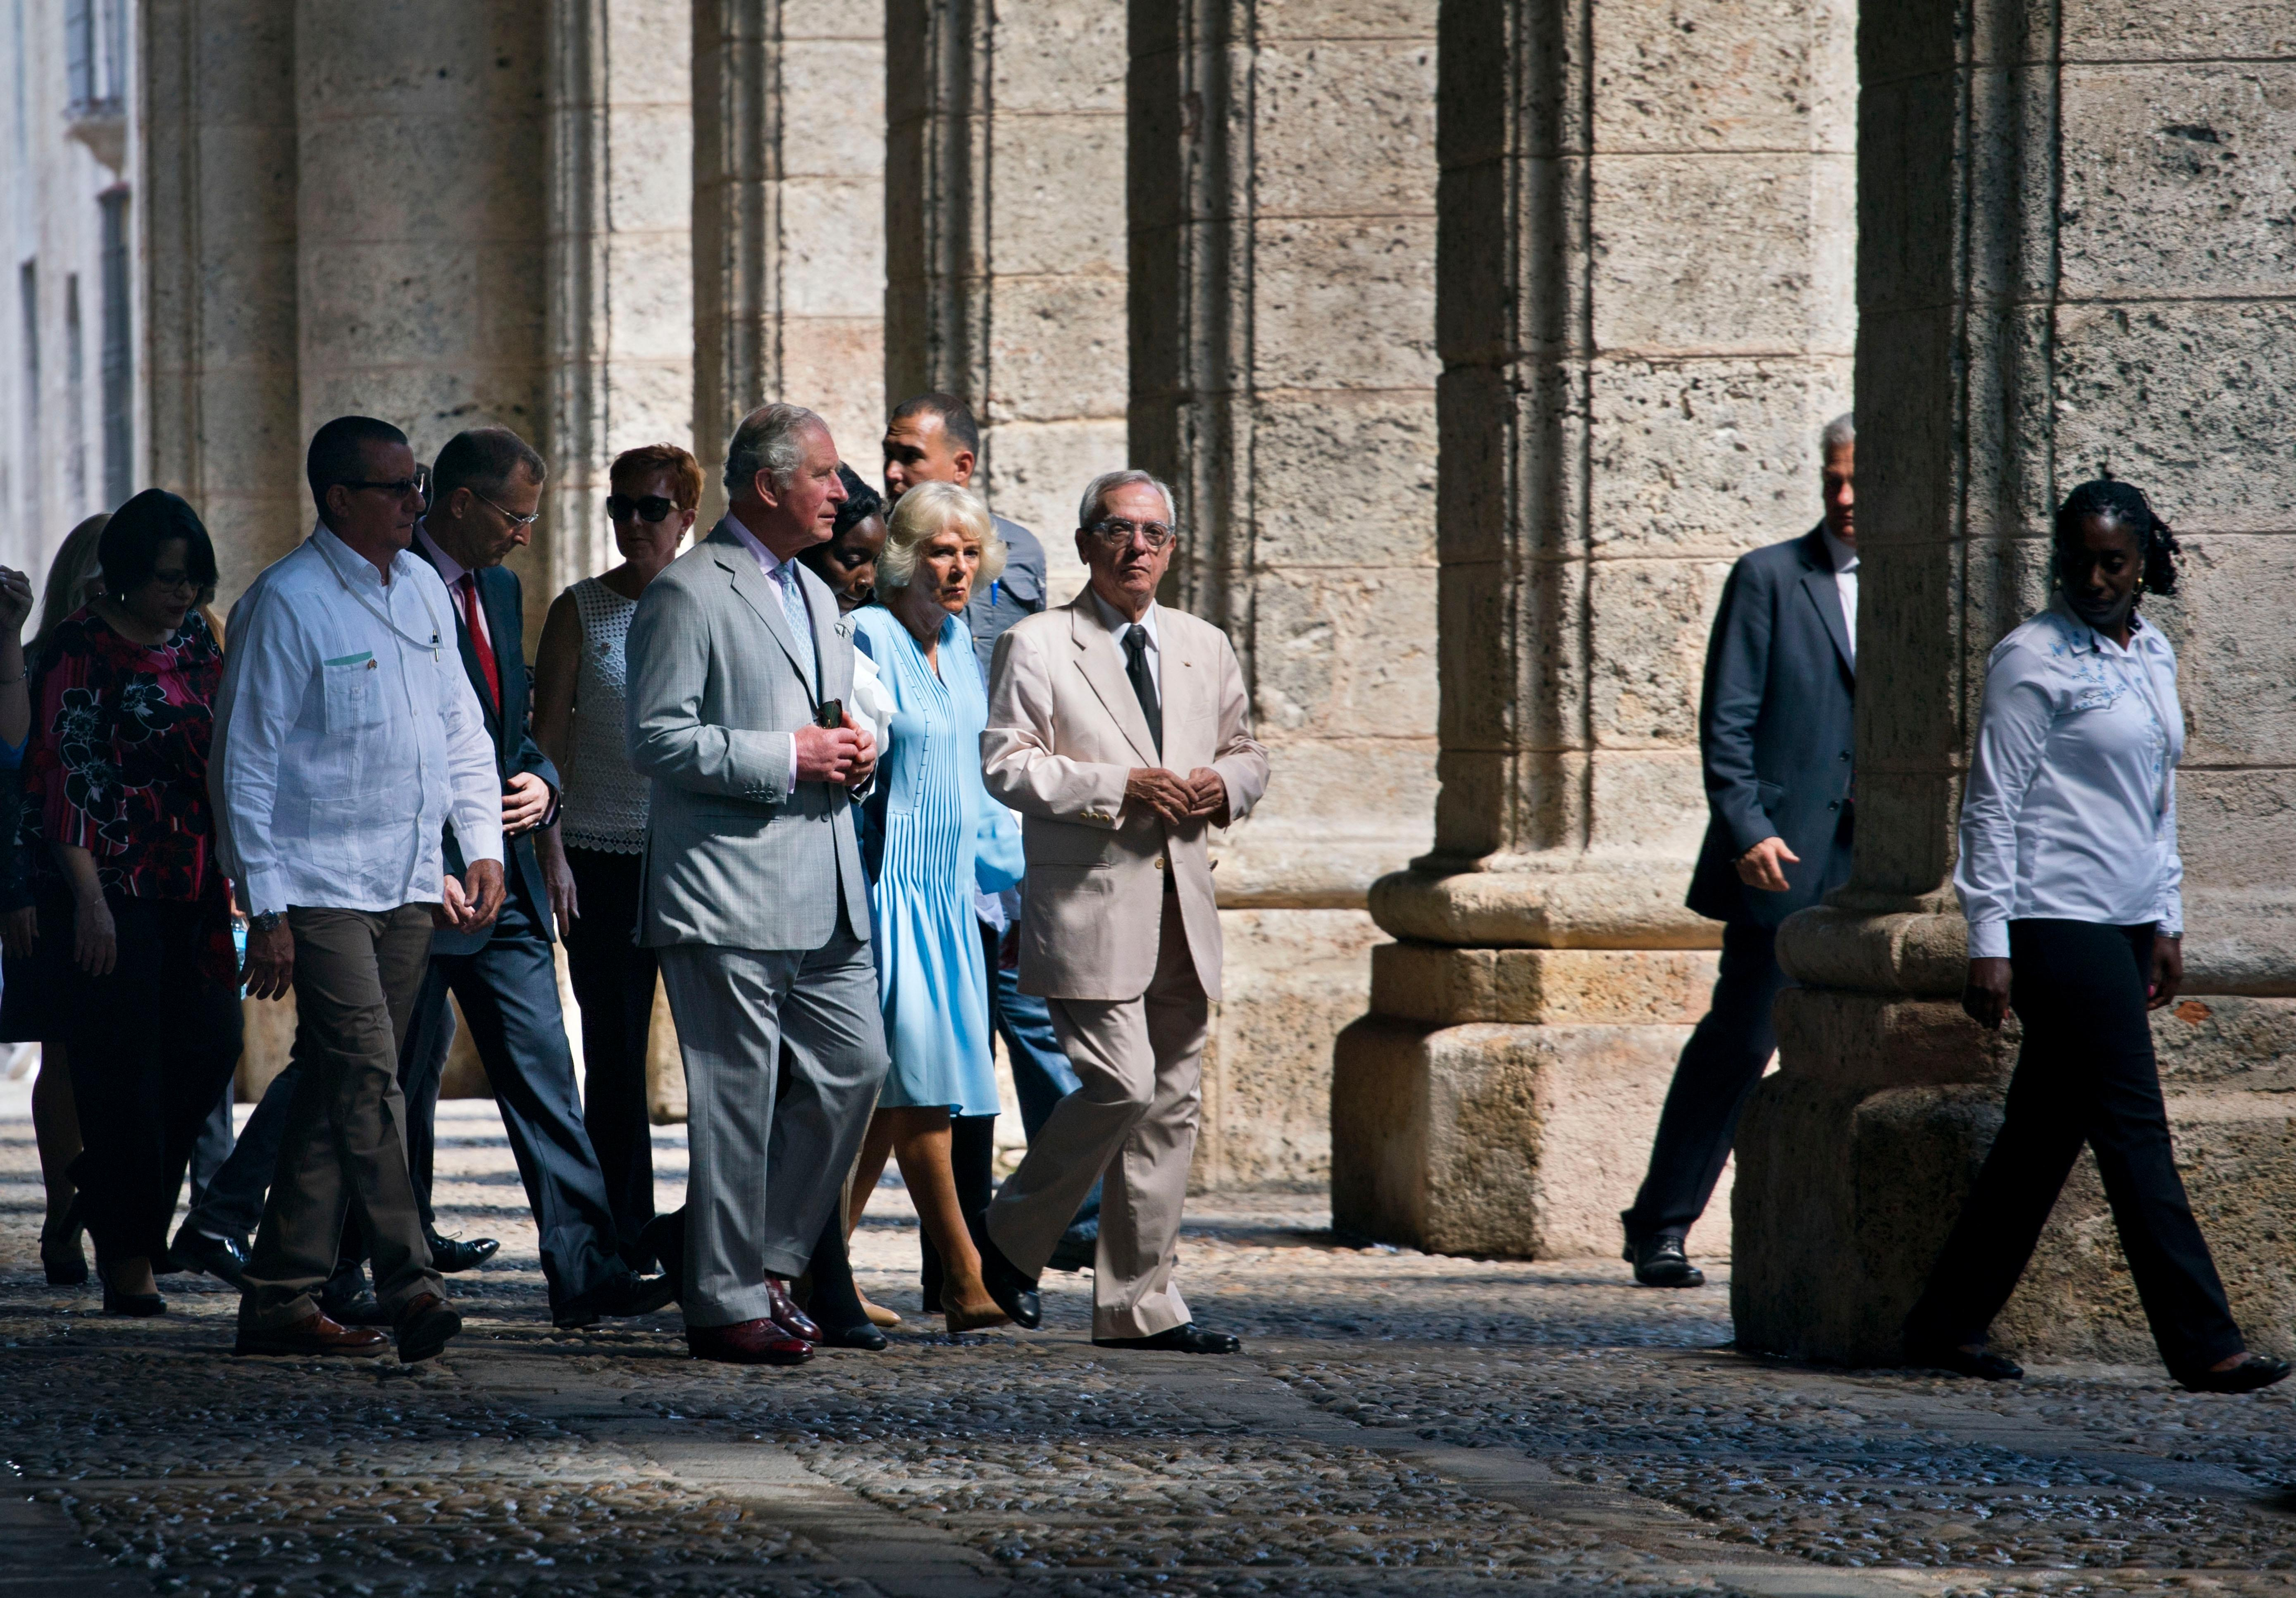 Britain's Prince Charles, the Prince of Wales, front left, and his wife Camilla, Duchess of Cornwall, take a guided tour led by City Historian Eusebio Leal, center, during their trip to Havana, Cuba, Monday, March 25, 2019. (AP Photo/Ramon Espinosa)